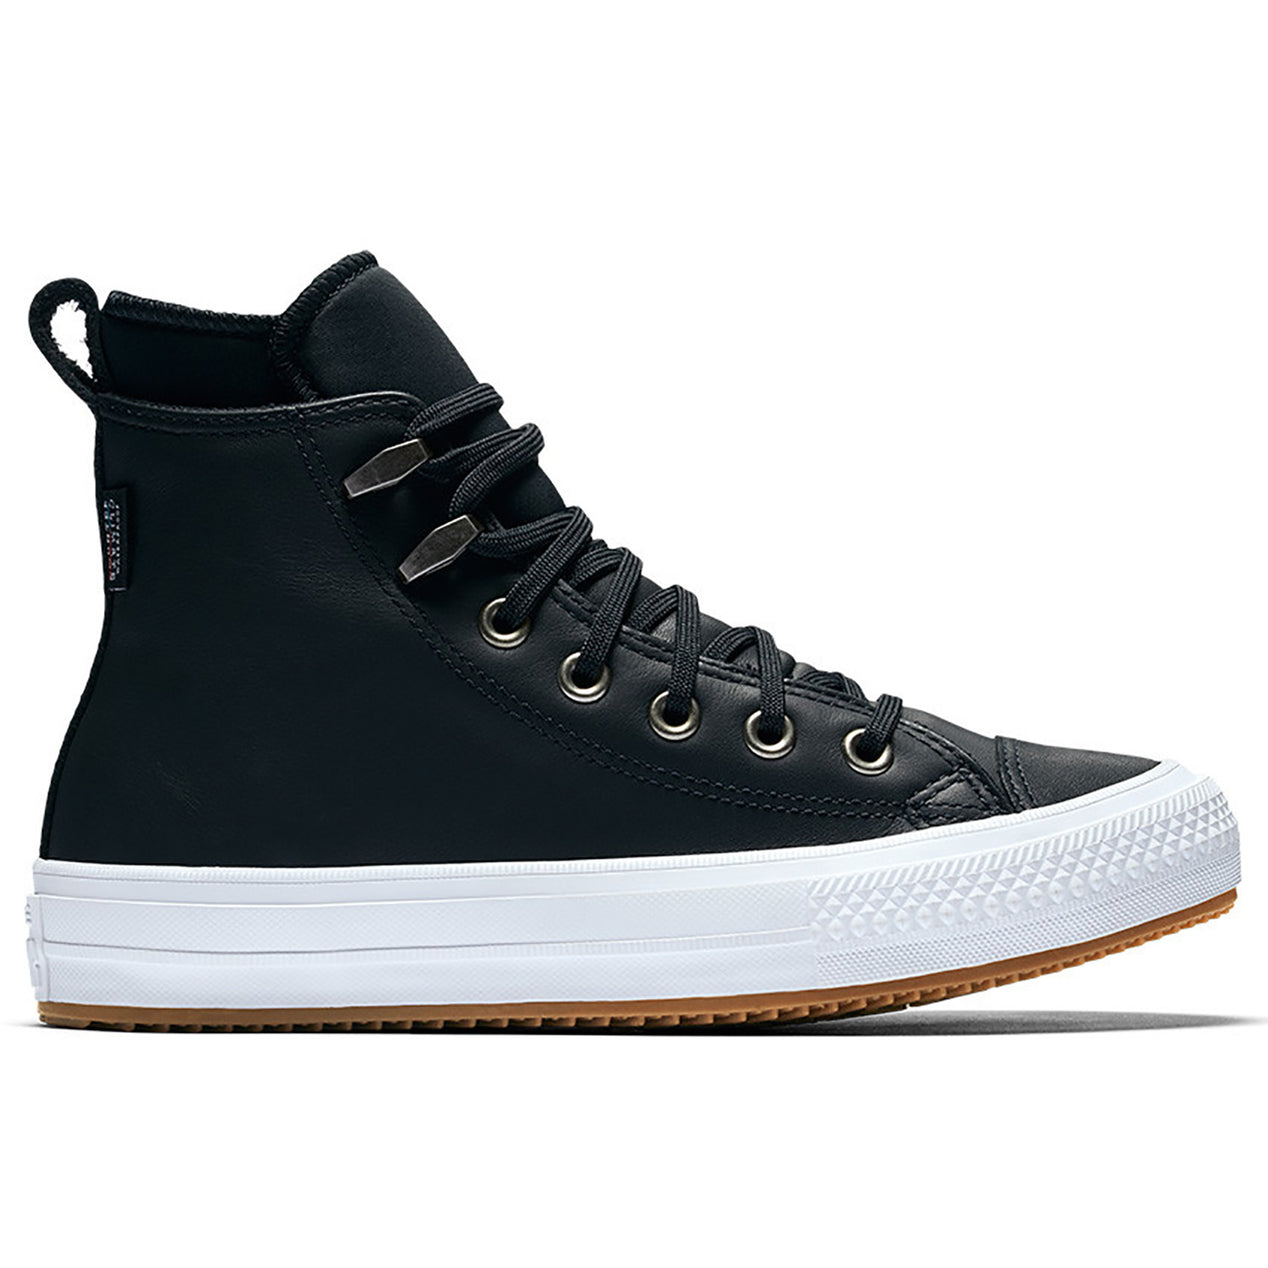 b12e7330af70 Converse Women s Chuck Taylor All Star Waterproof Boot - Hi Leather ...